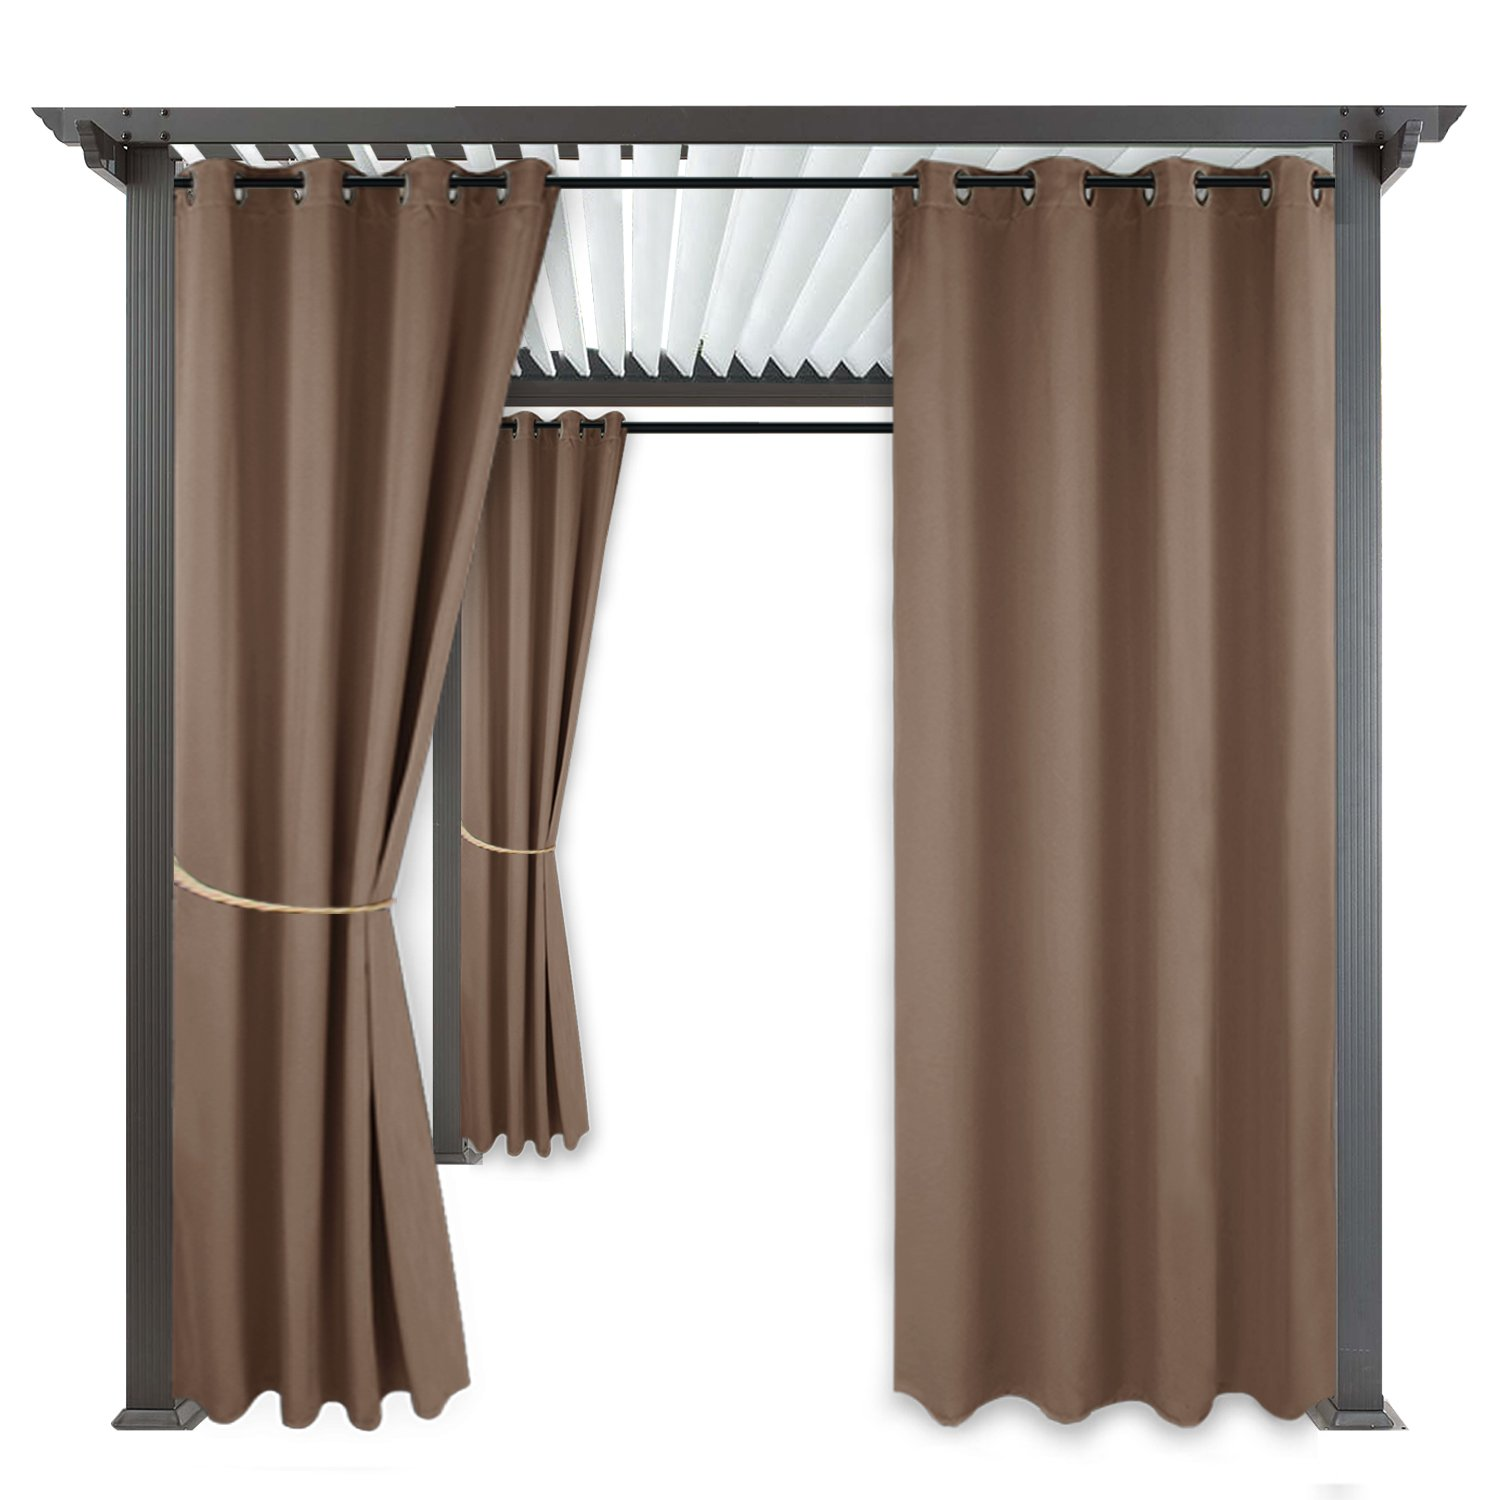 RYB HOME Balcony Curtains Outdoor - Free Standing Outdoor Privacy Curtain Exterior/Outside Curtains for Patio Light Block Heat Out Water Proof Drape, Single Panel, W 52 by L 108'', Mocha by RYB HOME